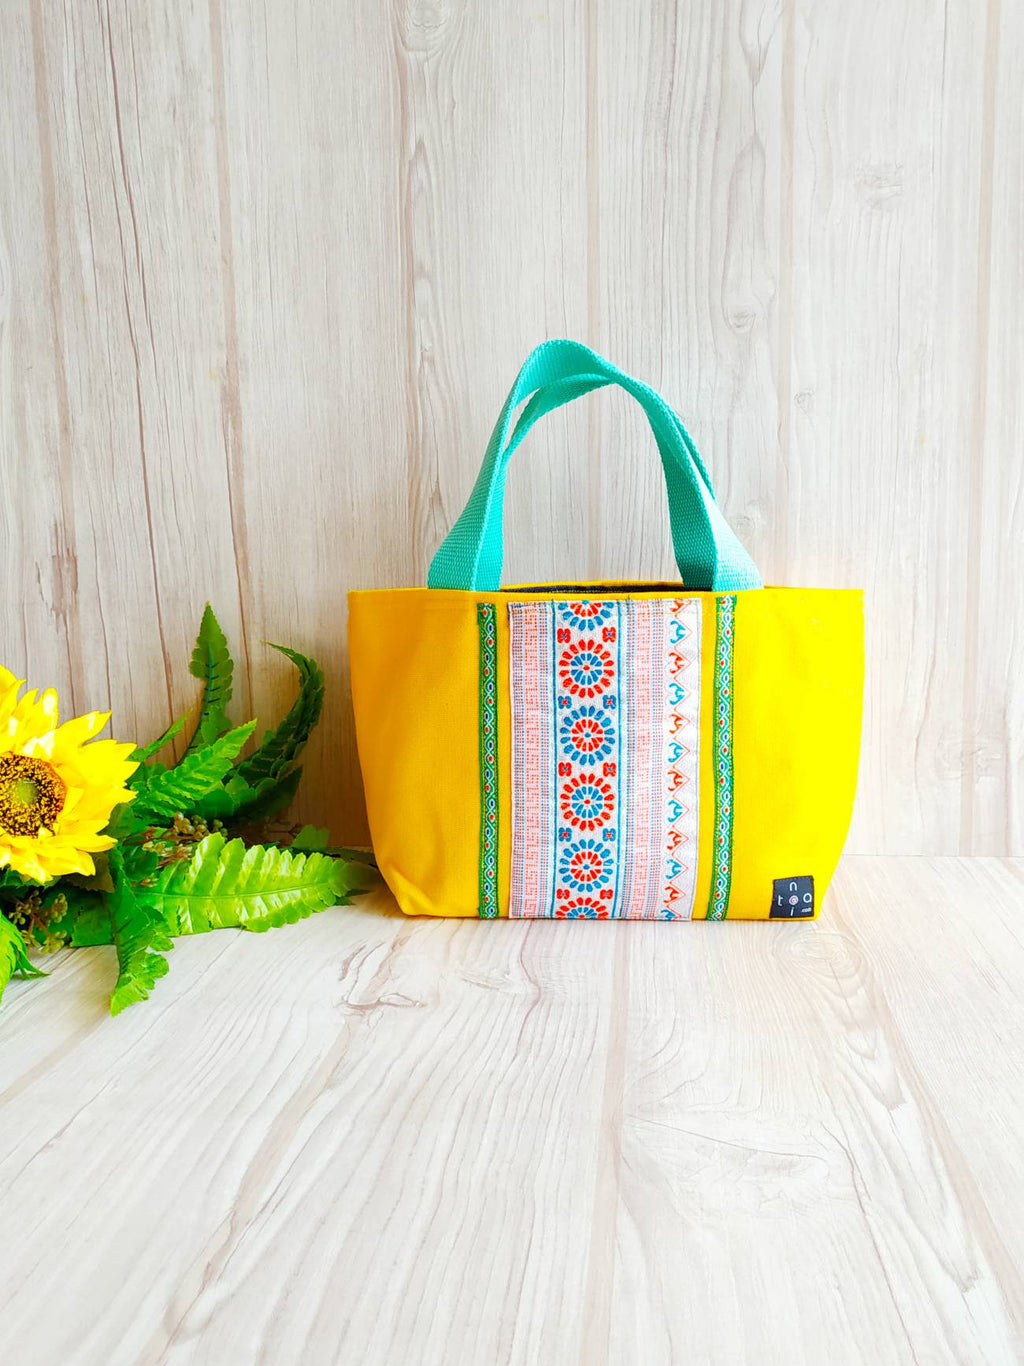 Hmong Bag, Hmong fabric, Canvas tote, Small carry tote, Chiang Mai bag, Embroidery tote, Flat bottom bag, Toddler tote, Ethnic tote, Yellow